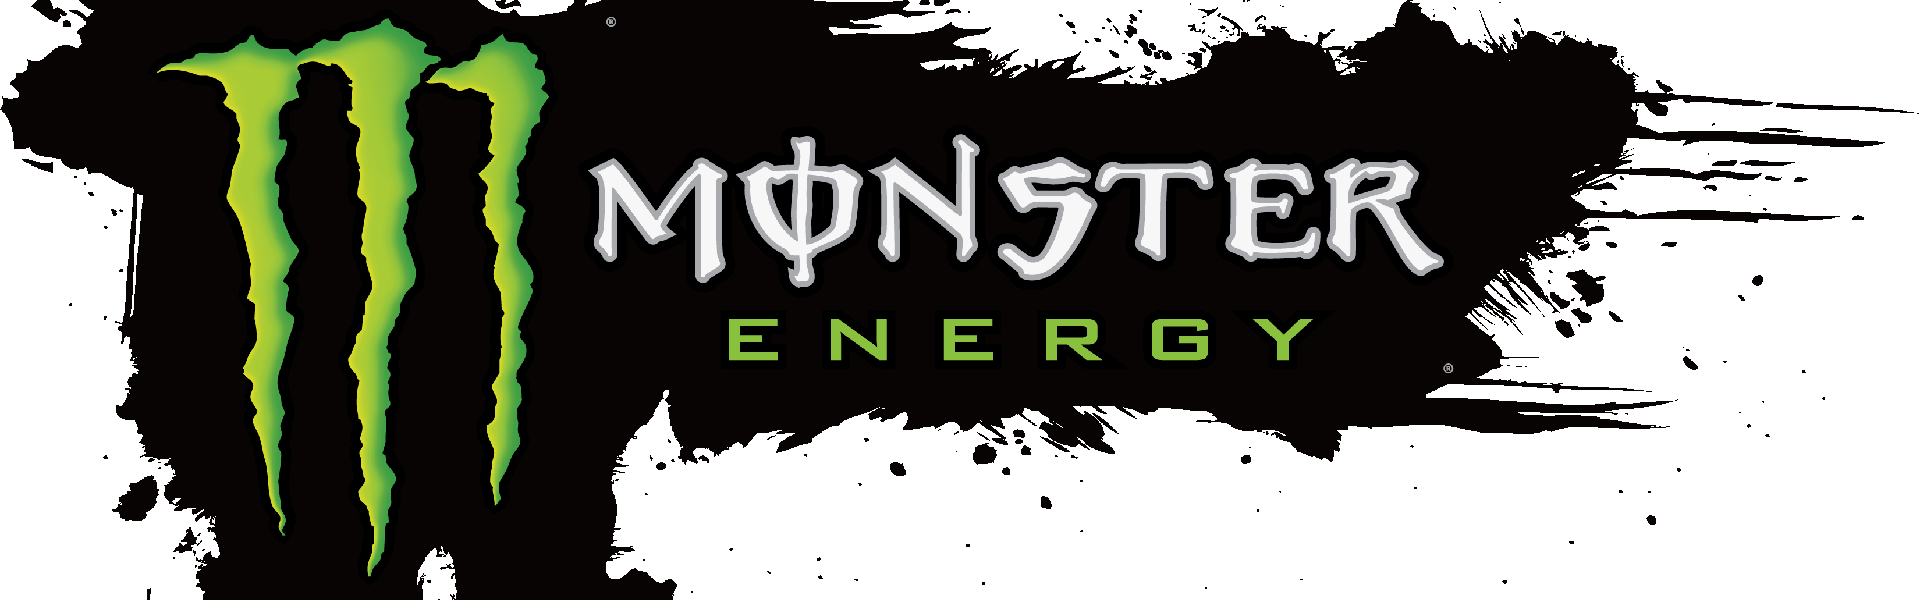 Monster logo png. Celebrates dismissal of lawsuits